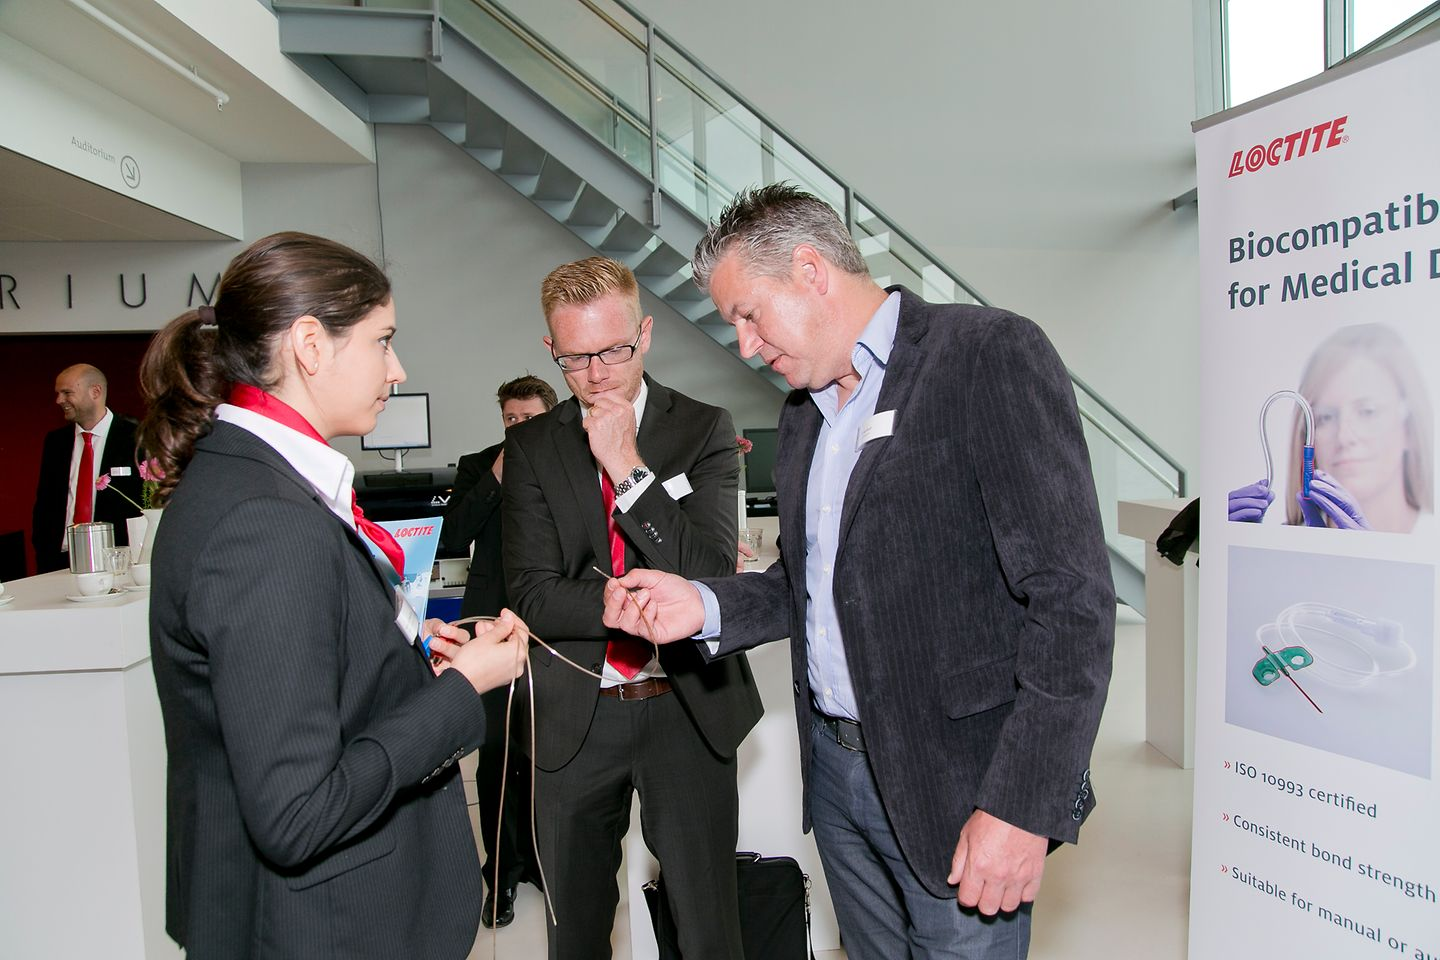 Henkel experts Lucie Heidar and Maarten Adolfs explain the applications of biocompatible adhesives for medical devices to a customer (right).